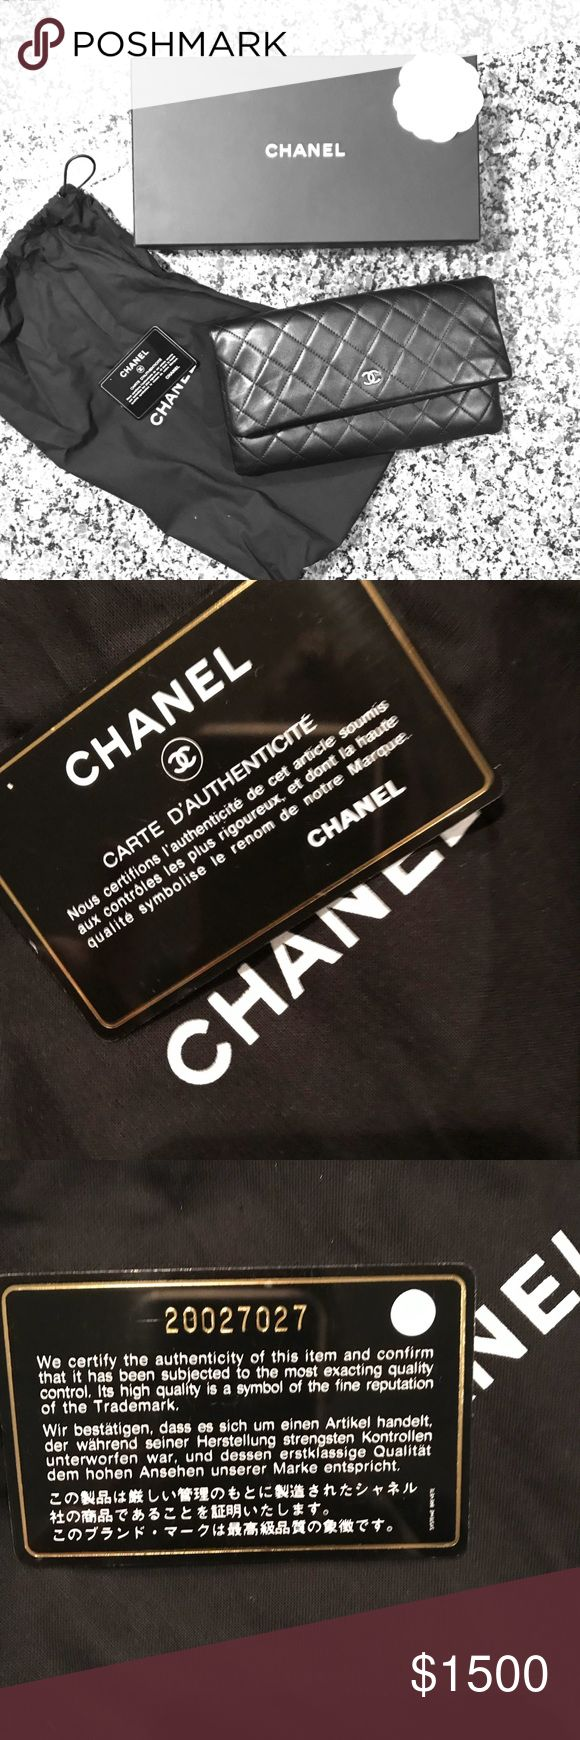 EUC Chanel Quilted Leather Clutch Beautiful, used only a few times Black Quilted Leather Chanel Clutch. Clutch comes with Certificate of Authenticity, dust bag and original box. CHANEL Bags Clutches & Wristlets